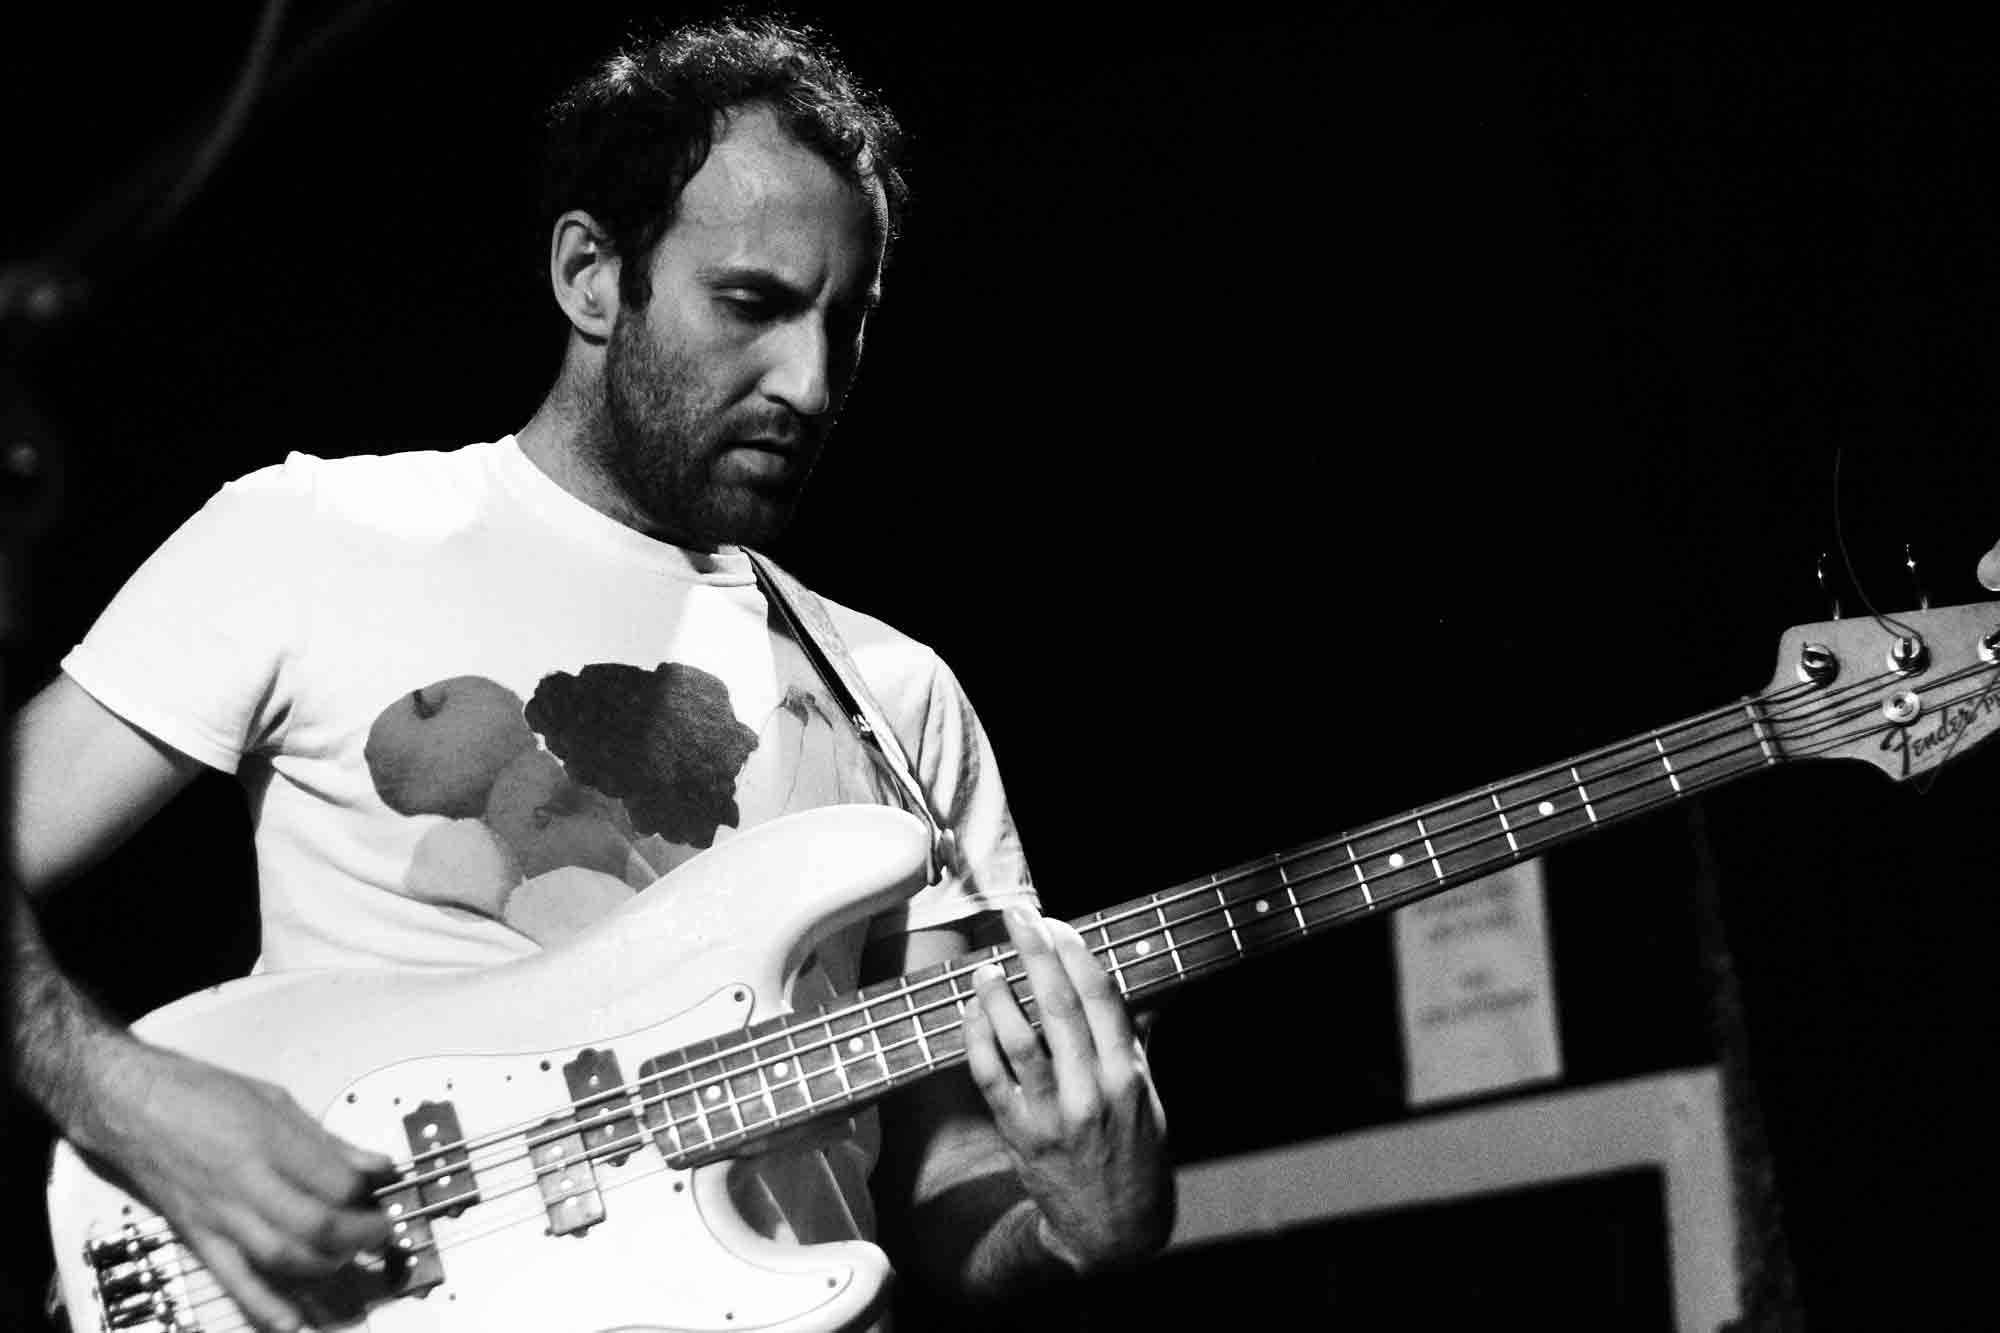 Preoccupations at the Cobalt, Vancouver, May 9 2018. Celine Pinget photo.